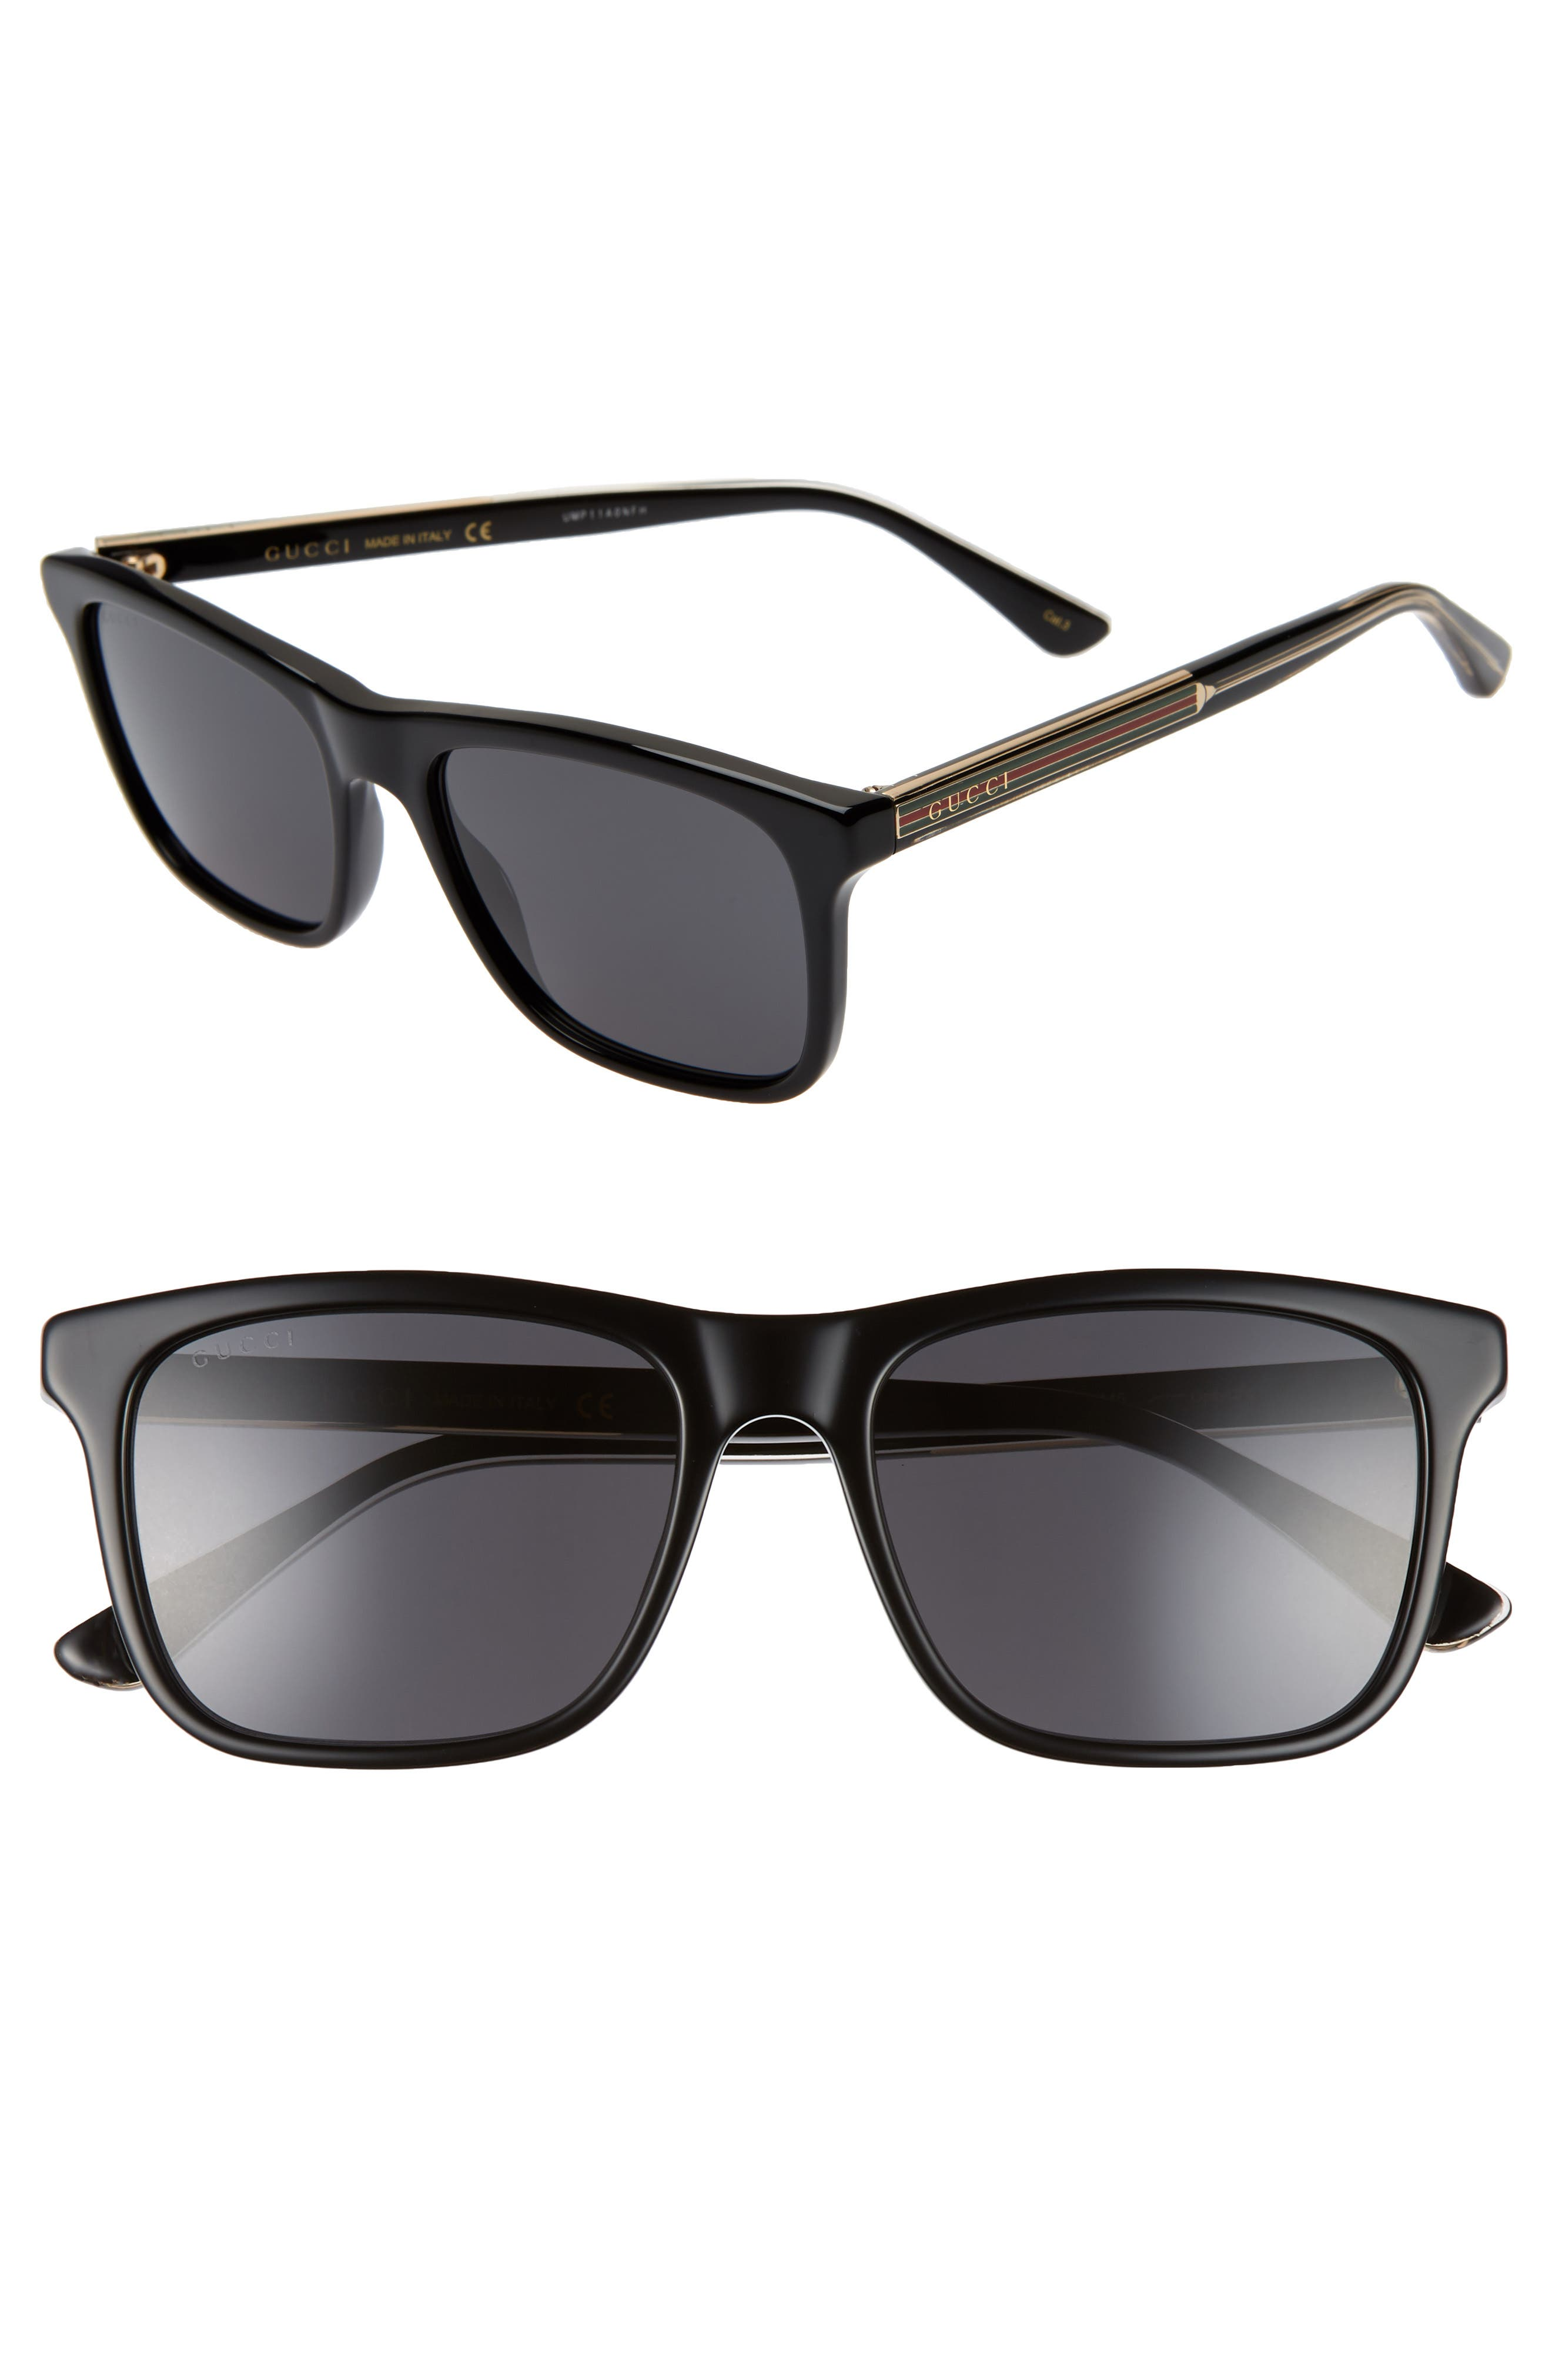 55mm Polarized Sunglasses,                             Main thumbnail 1, color,                             001